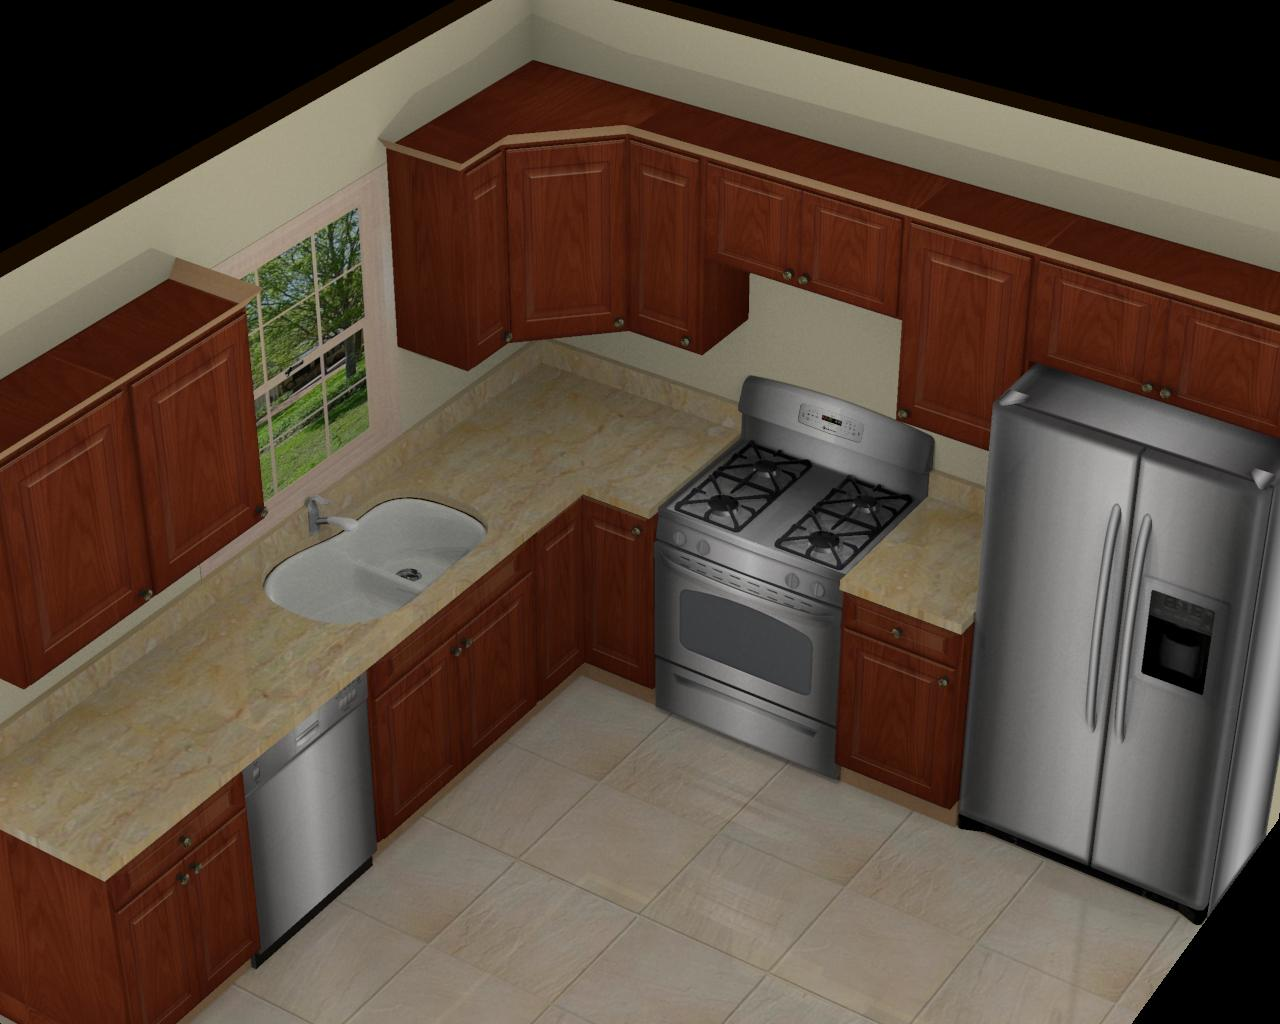 Foundation dezin decor 3d kitchen model design for House kitchen model